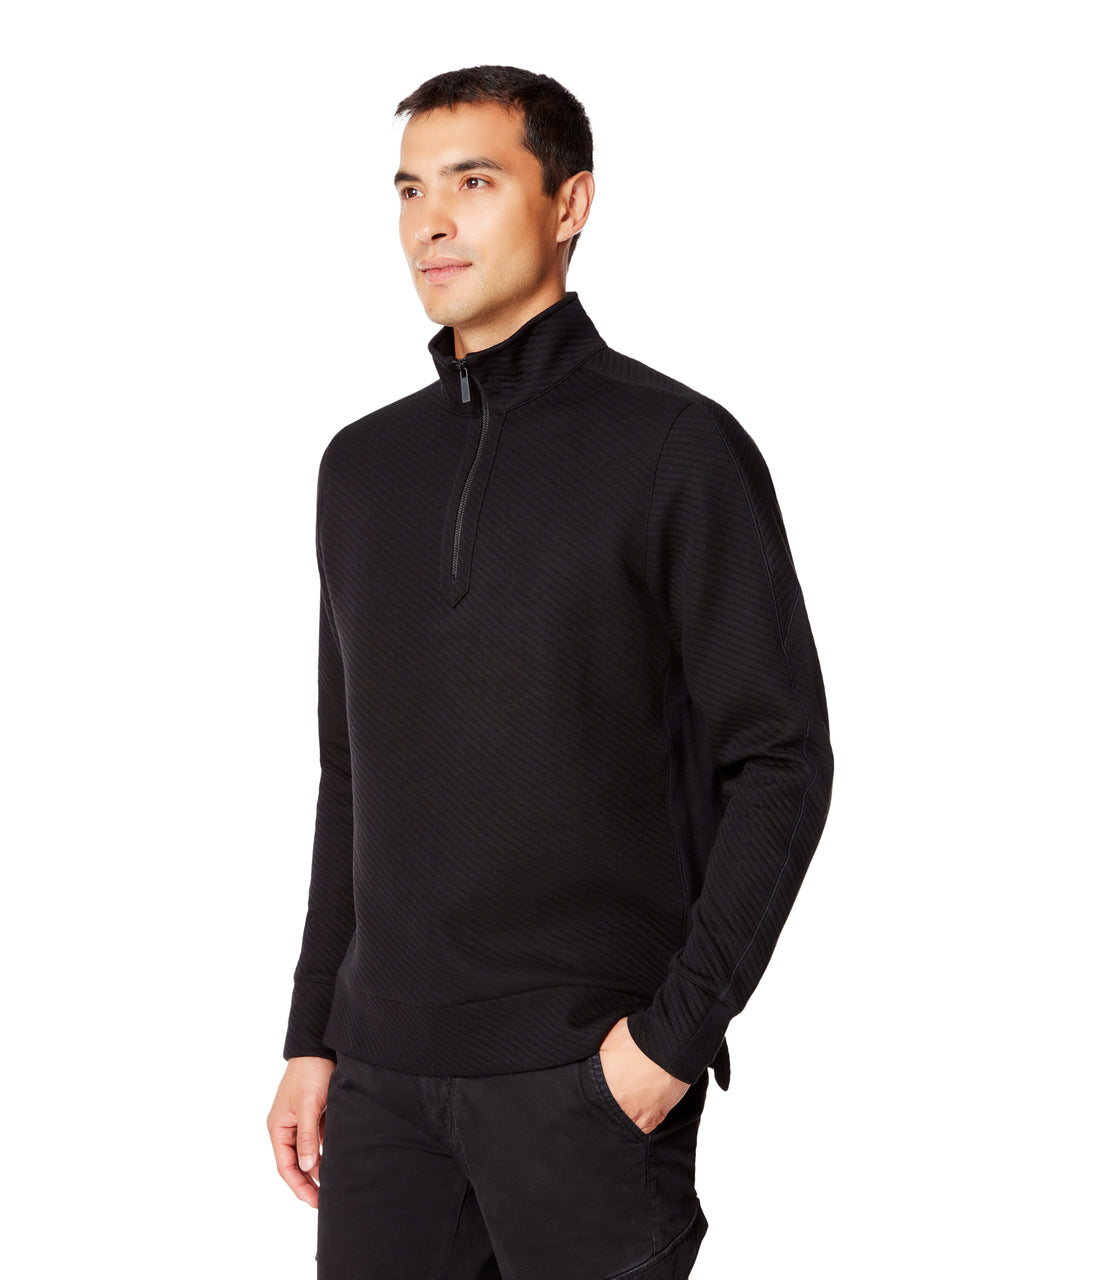 Twill Quilt Jacquard Pro 1/4 Zip Sweatshirt - Black - Good Man Brand - Twill Quilt Jacquard Pro 1/4 Zip Sweatshirt - Black